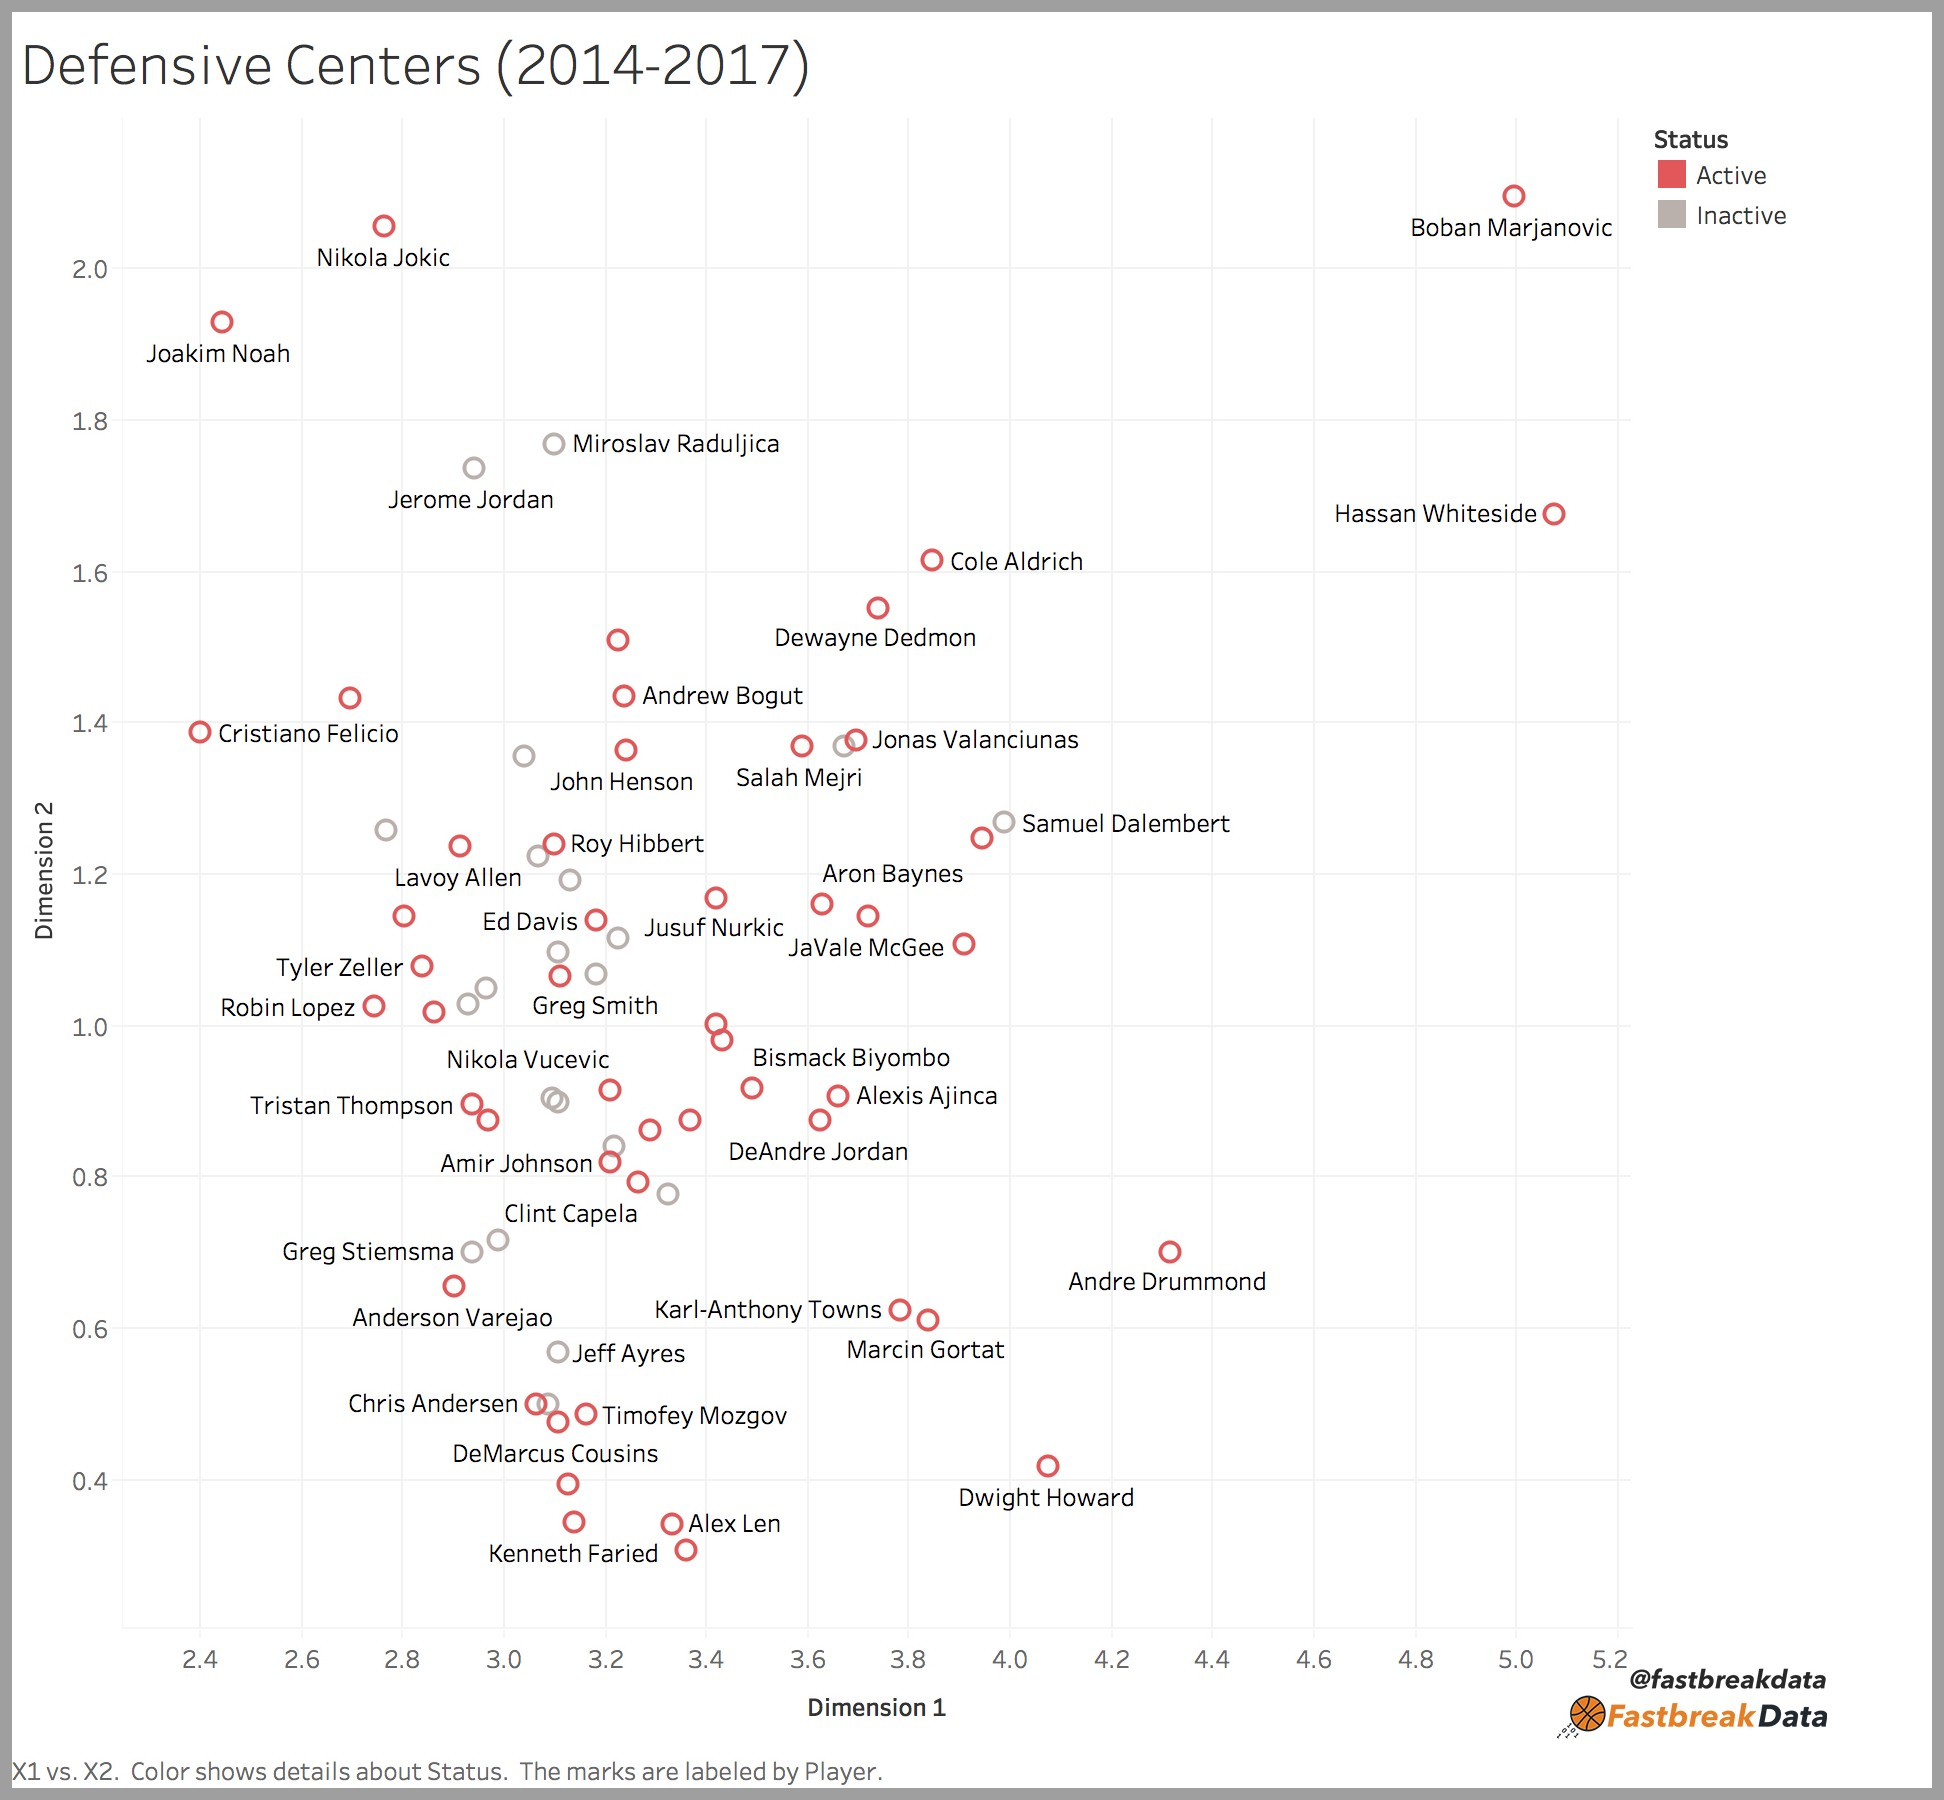 Using Machine Learning to Find the 8 Types of Players in the NBA